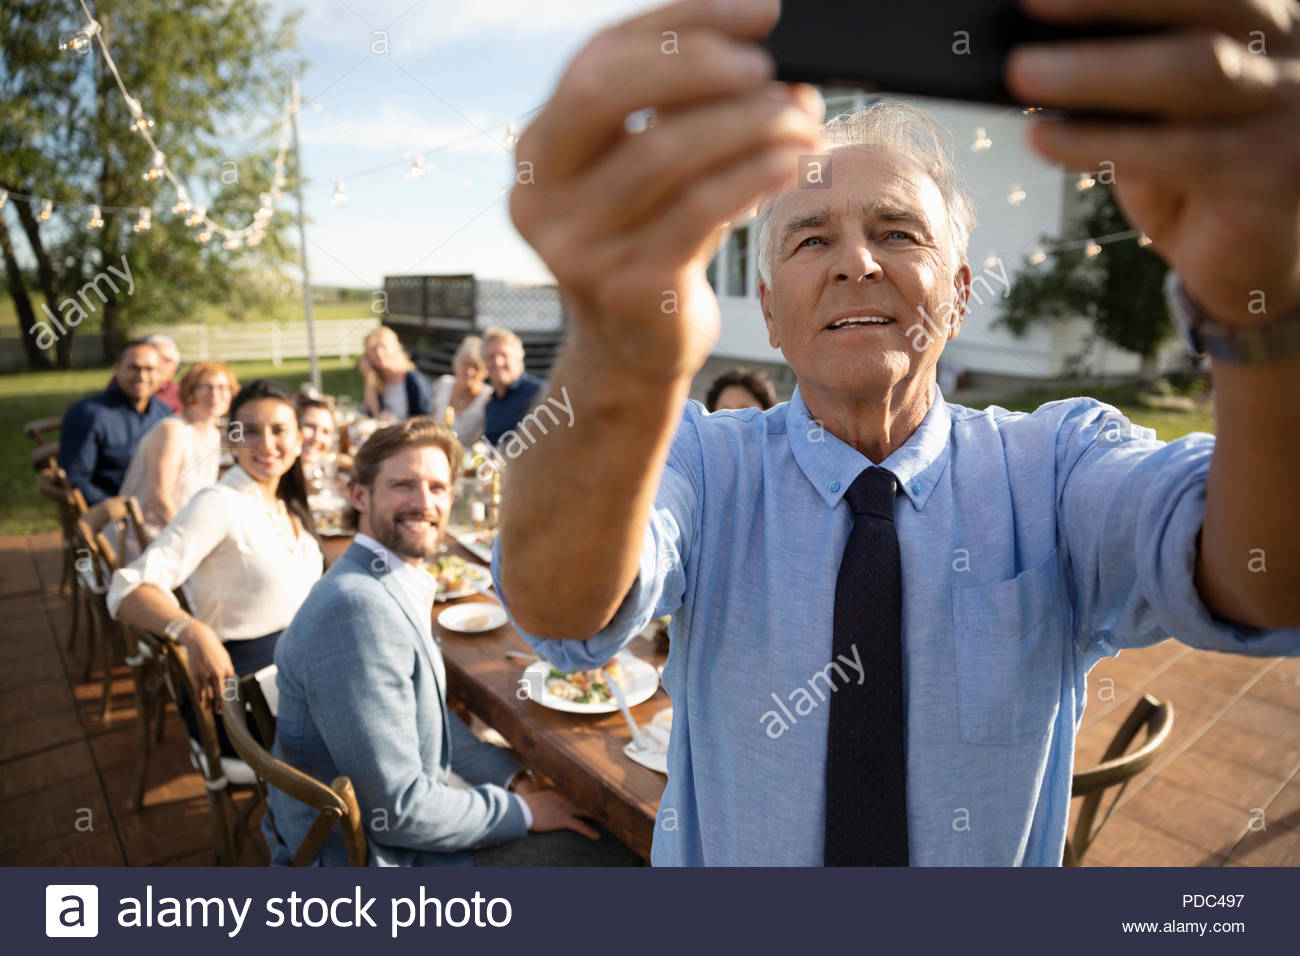 Senior man with camera phone taking selfie with friends at retirement party in sunny rural garden - Stock Image